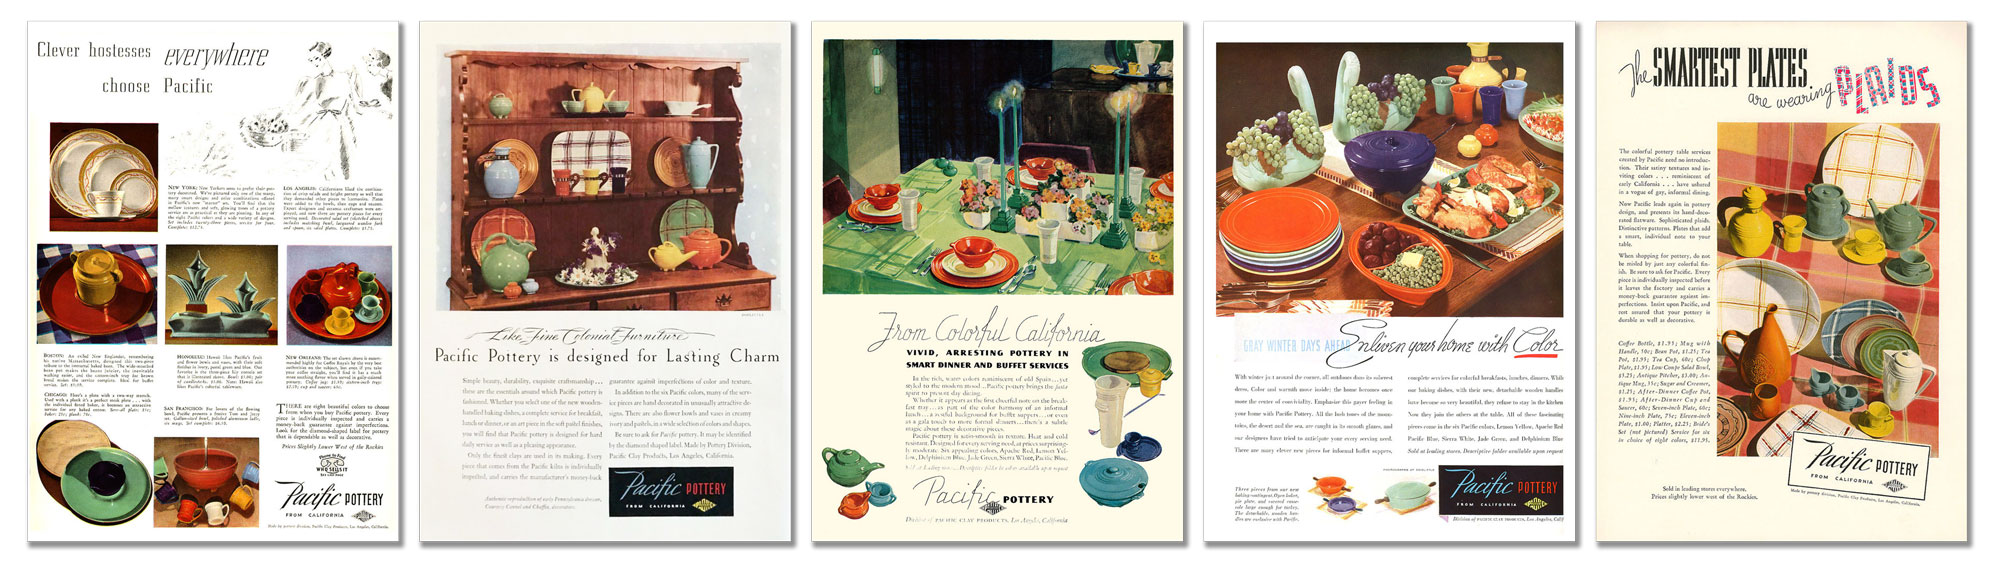 Pacific Pottery Magazine Advertising